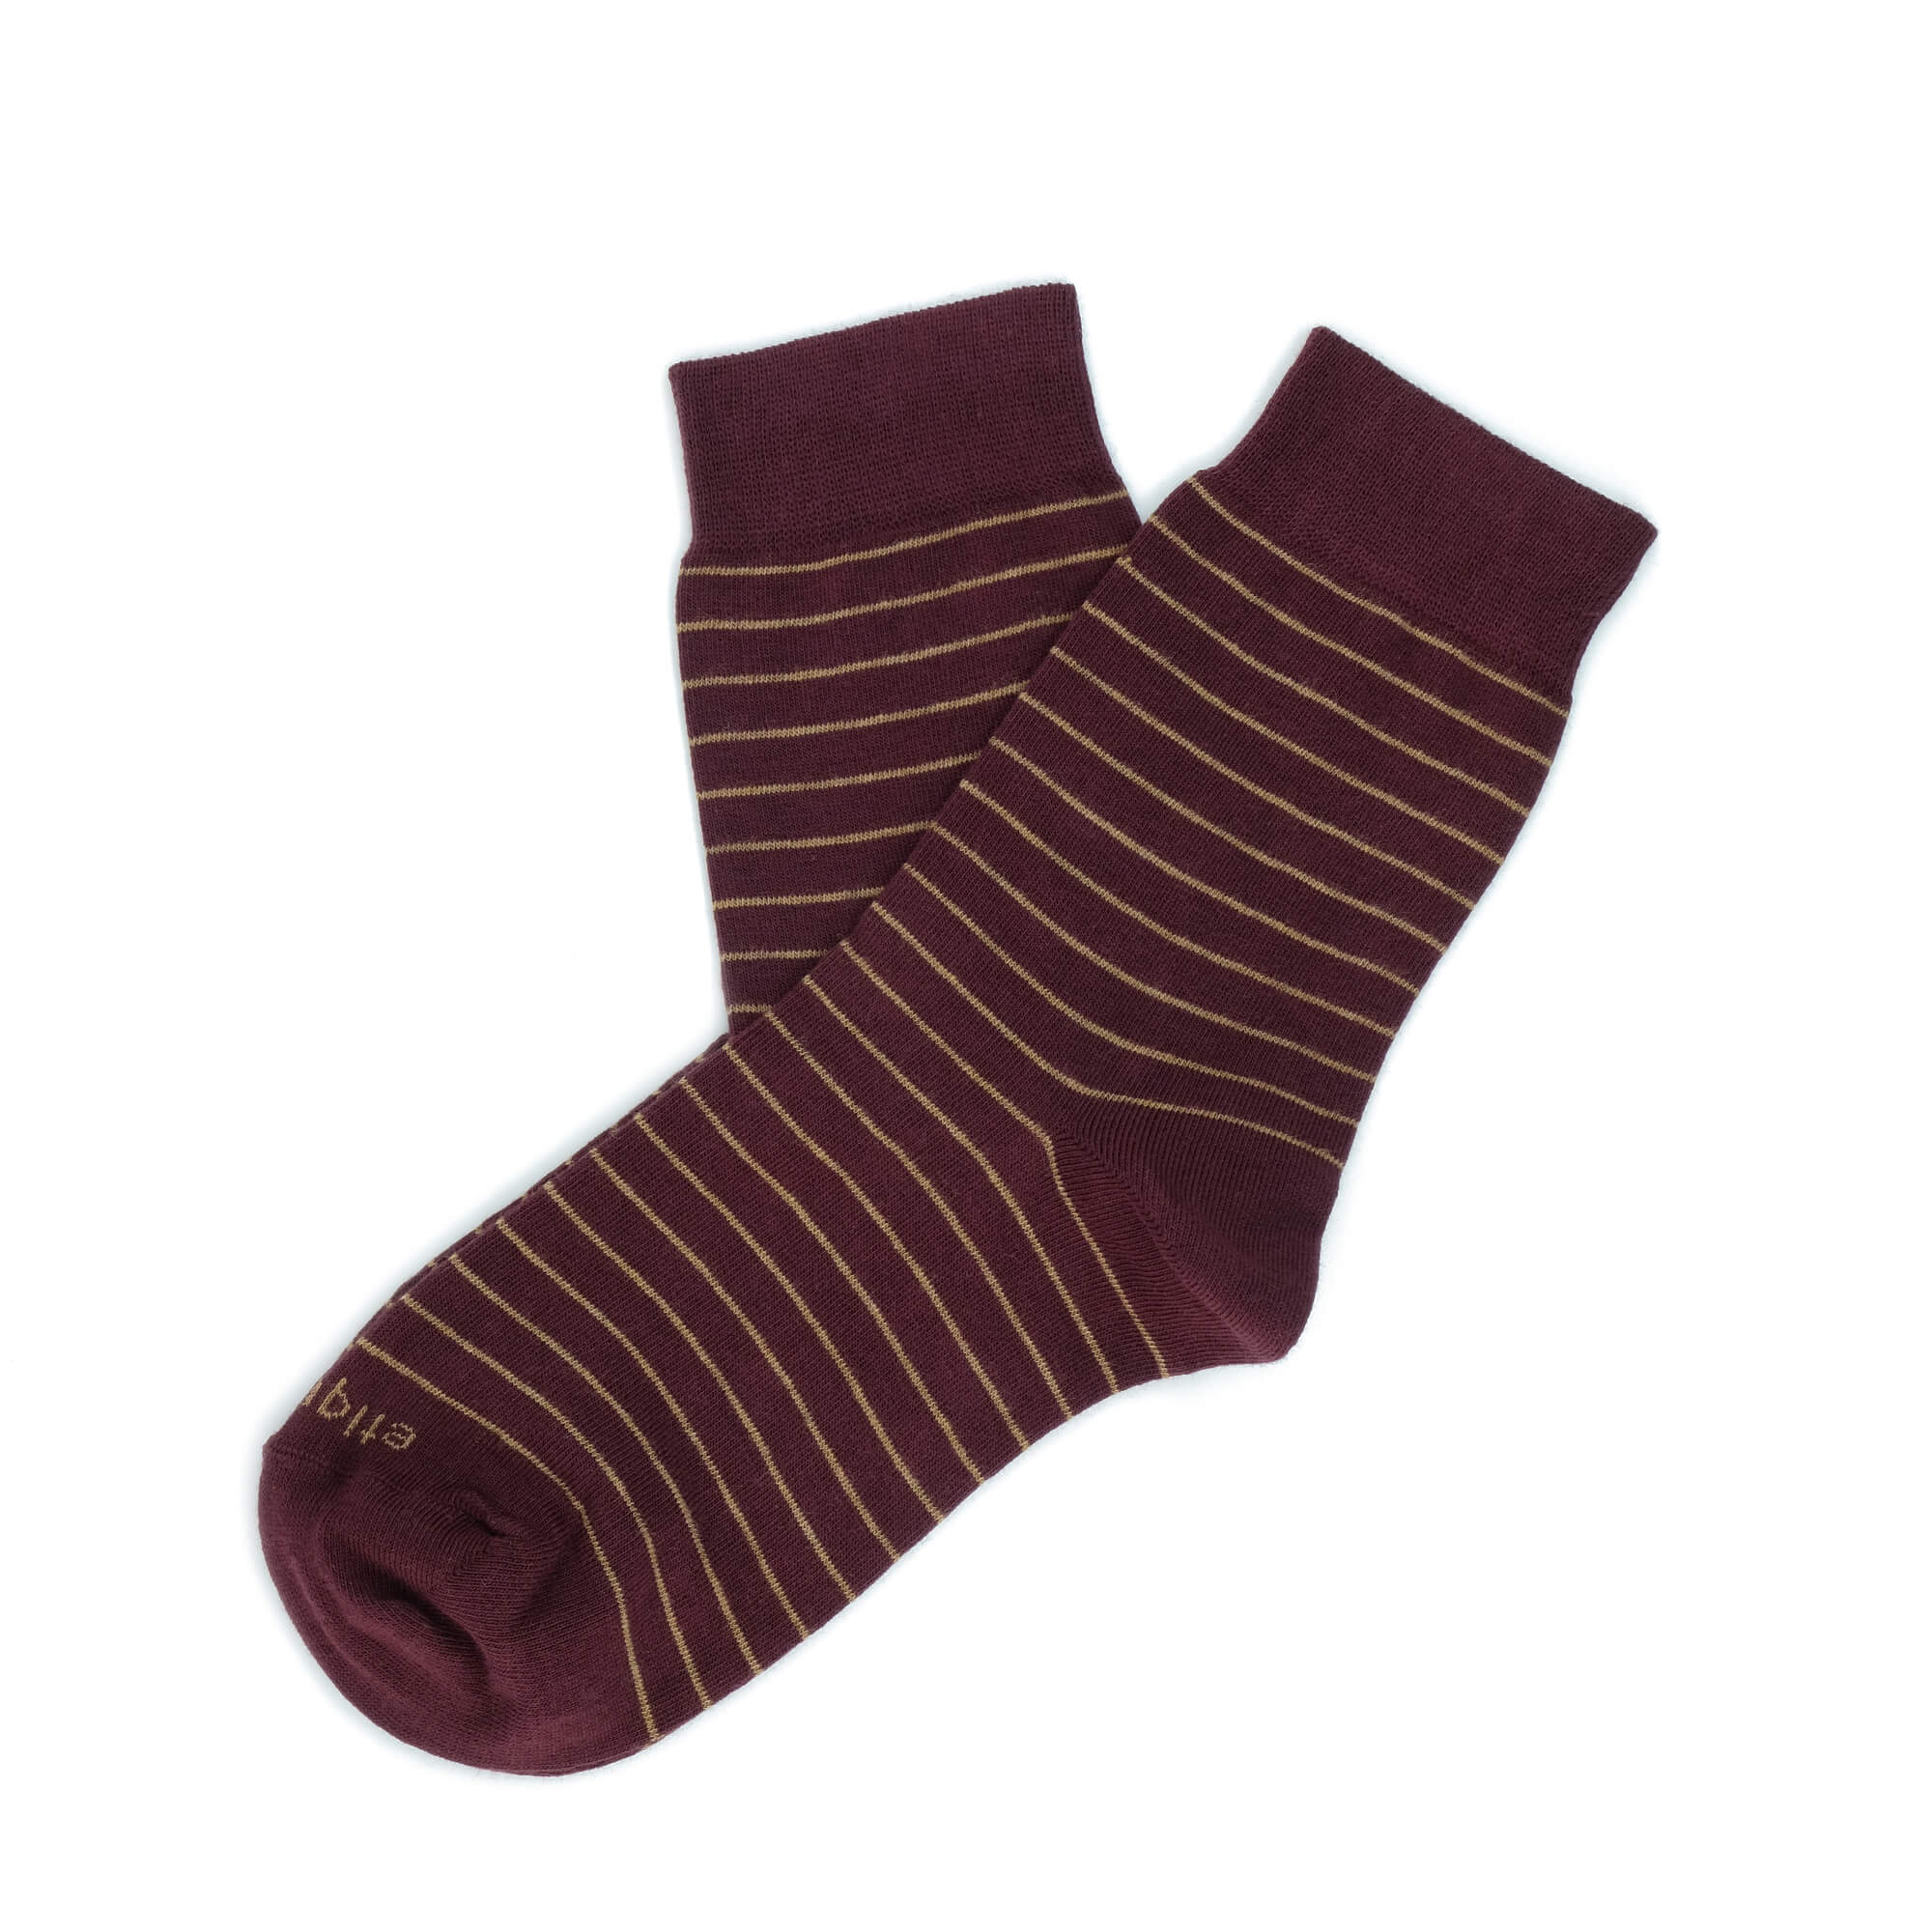 Womens Socks - Needle Stripes Women's Socks - Bordeaux⎪Etiquette Clothiers